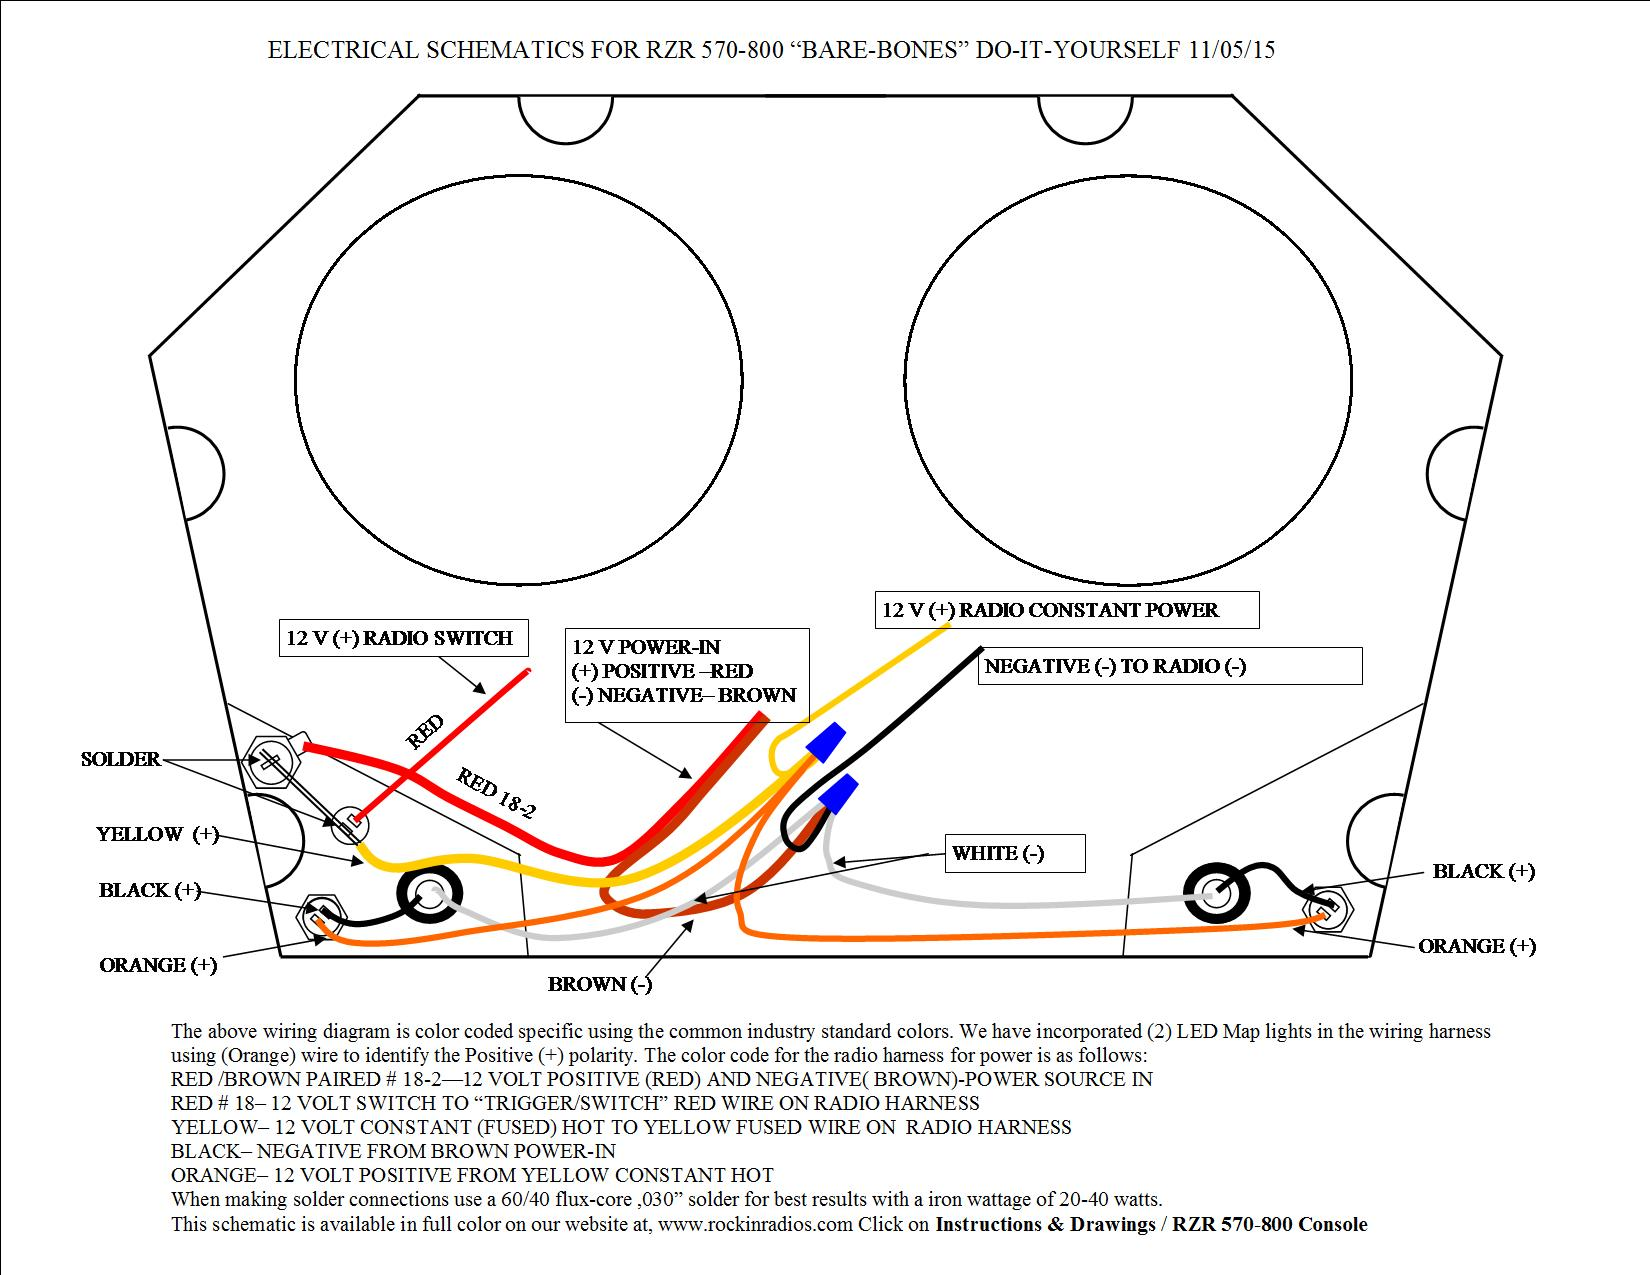 rzr 570 800 instruction ,drawings, wiring diagram RZR 800 Rock Crawler